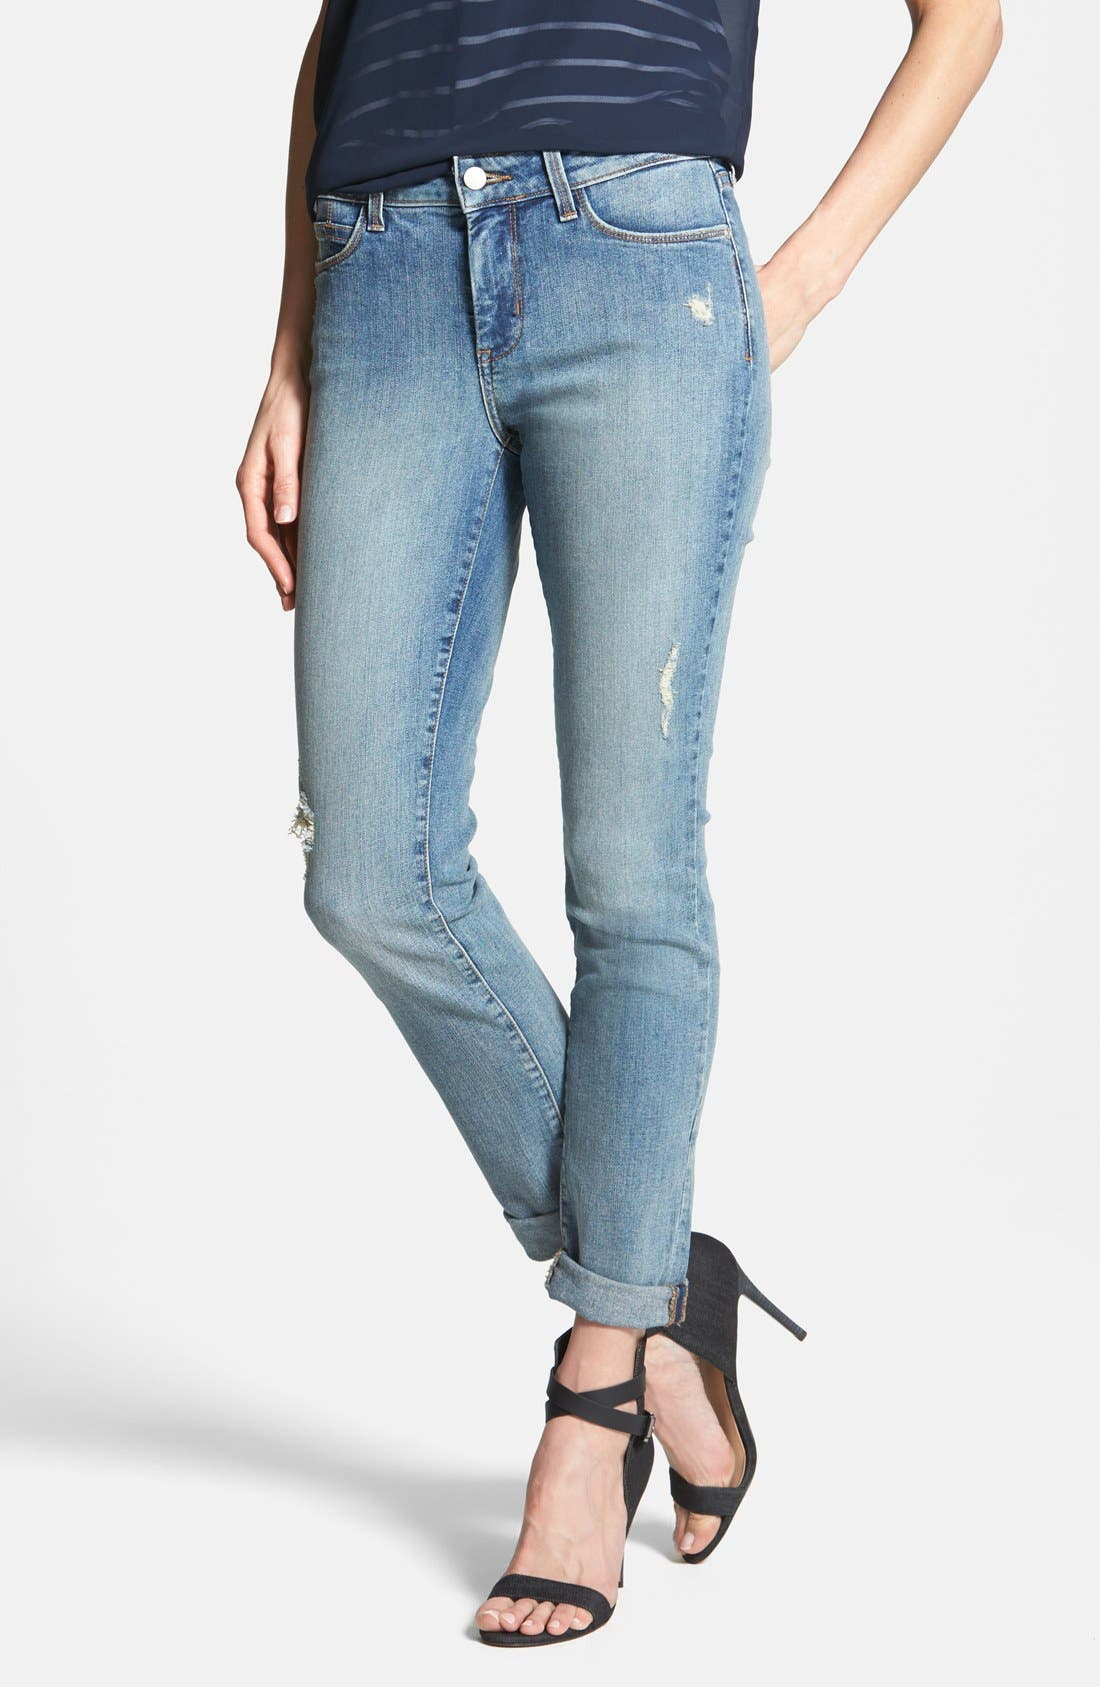 Alternate Image 1 Selected - NYDJ 'Anabelle' Distressed Stretch Skinny Ankle Jeans (Lake Havasu) (Regular & Petite)